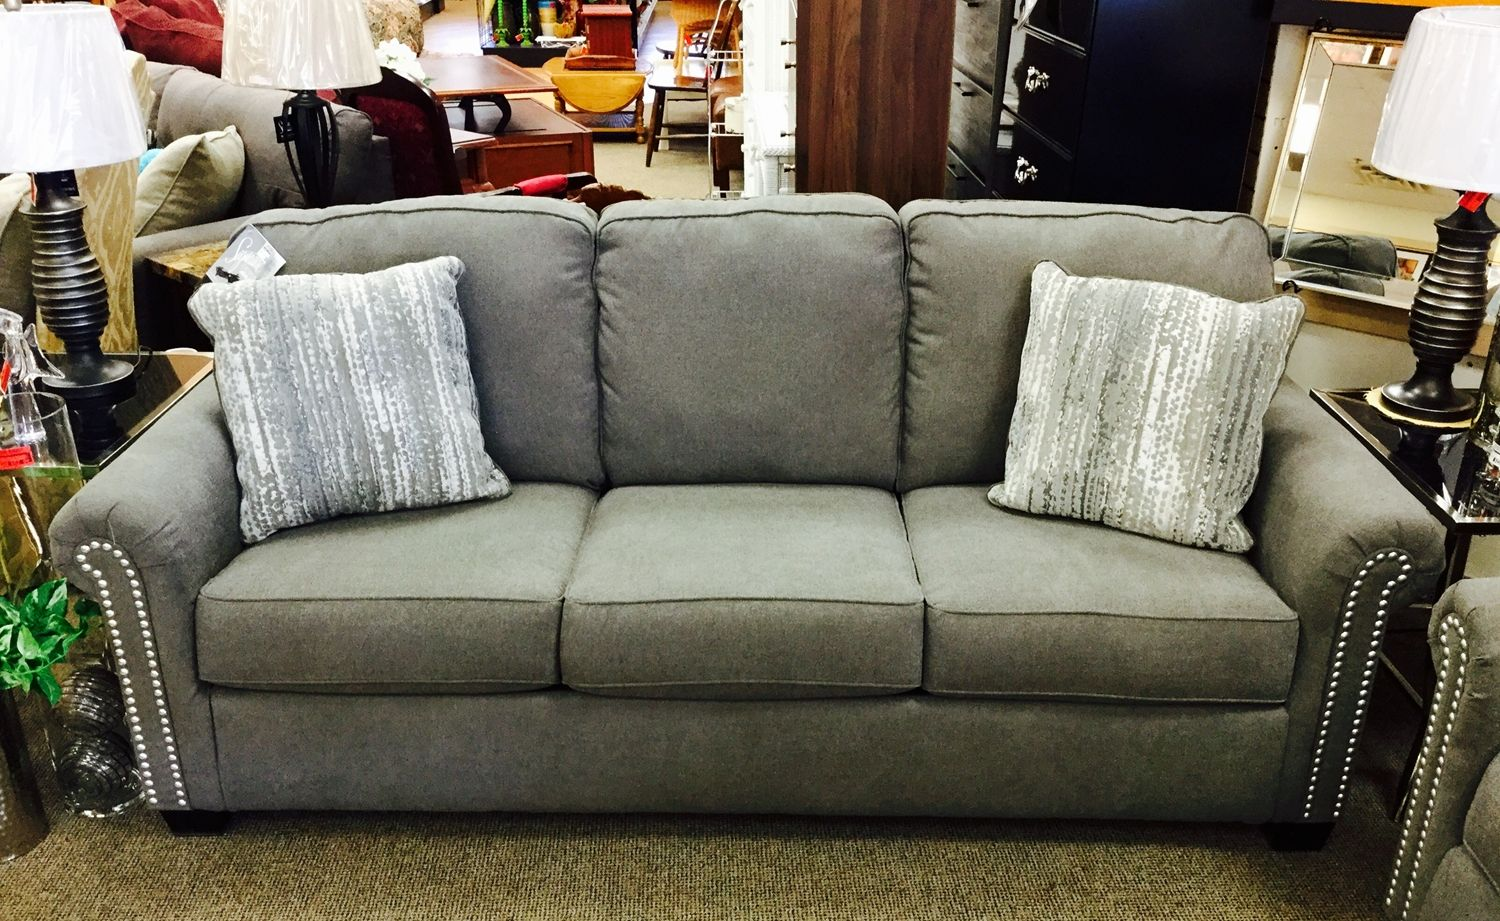 3 Days Left To Save 20 Off All New Gently Used Sofas Pay Only 344 For This Brand Gilman Sofa From Ashley Furniture Through Sunday